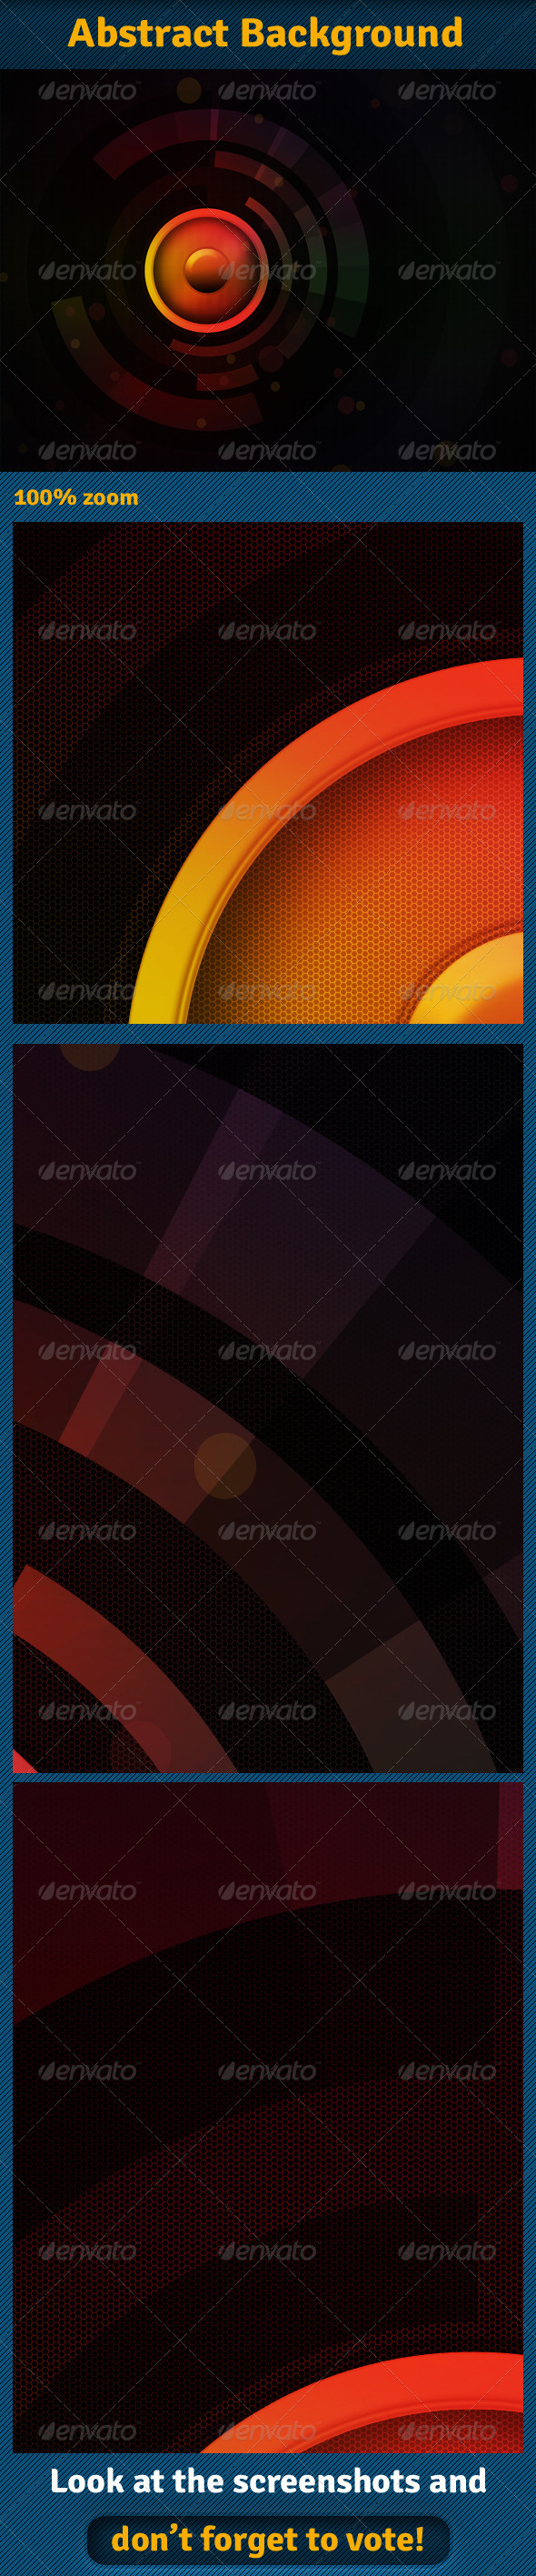 GraphicRiver Abstract Backgrounds 04 6713475